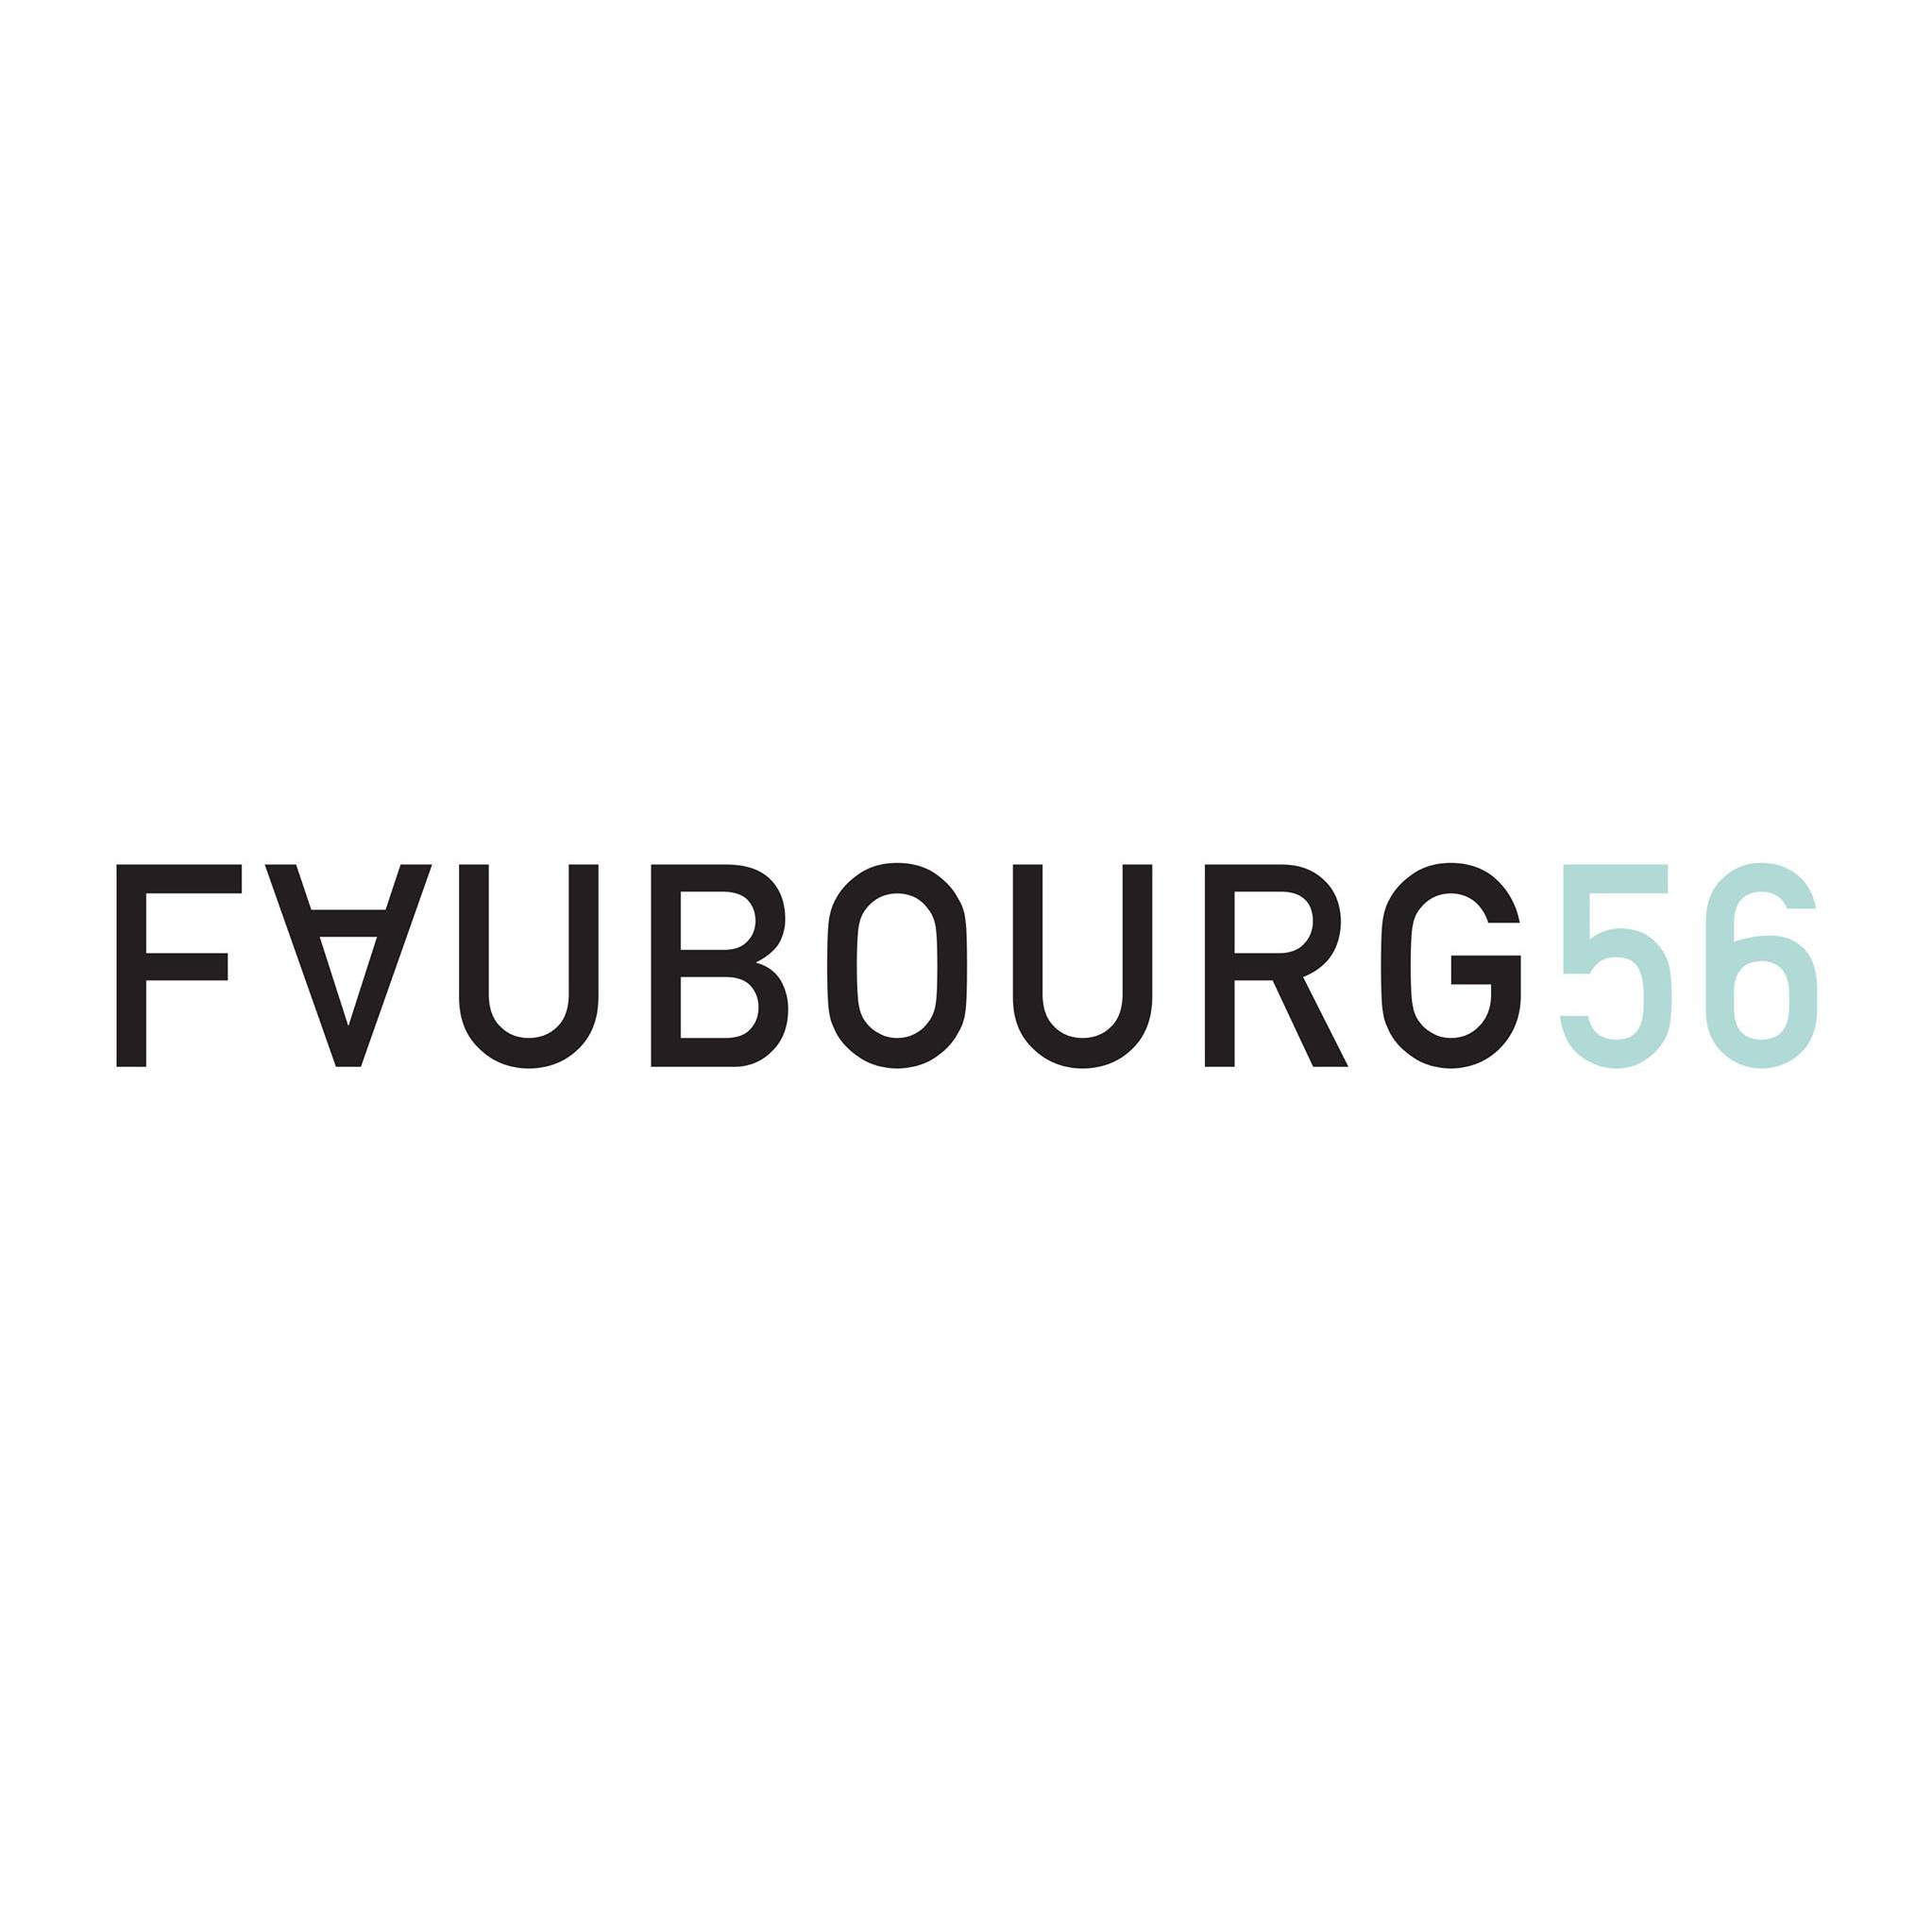 Faubourg56 Coliving Company